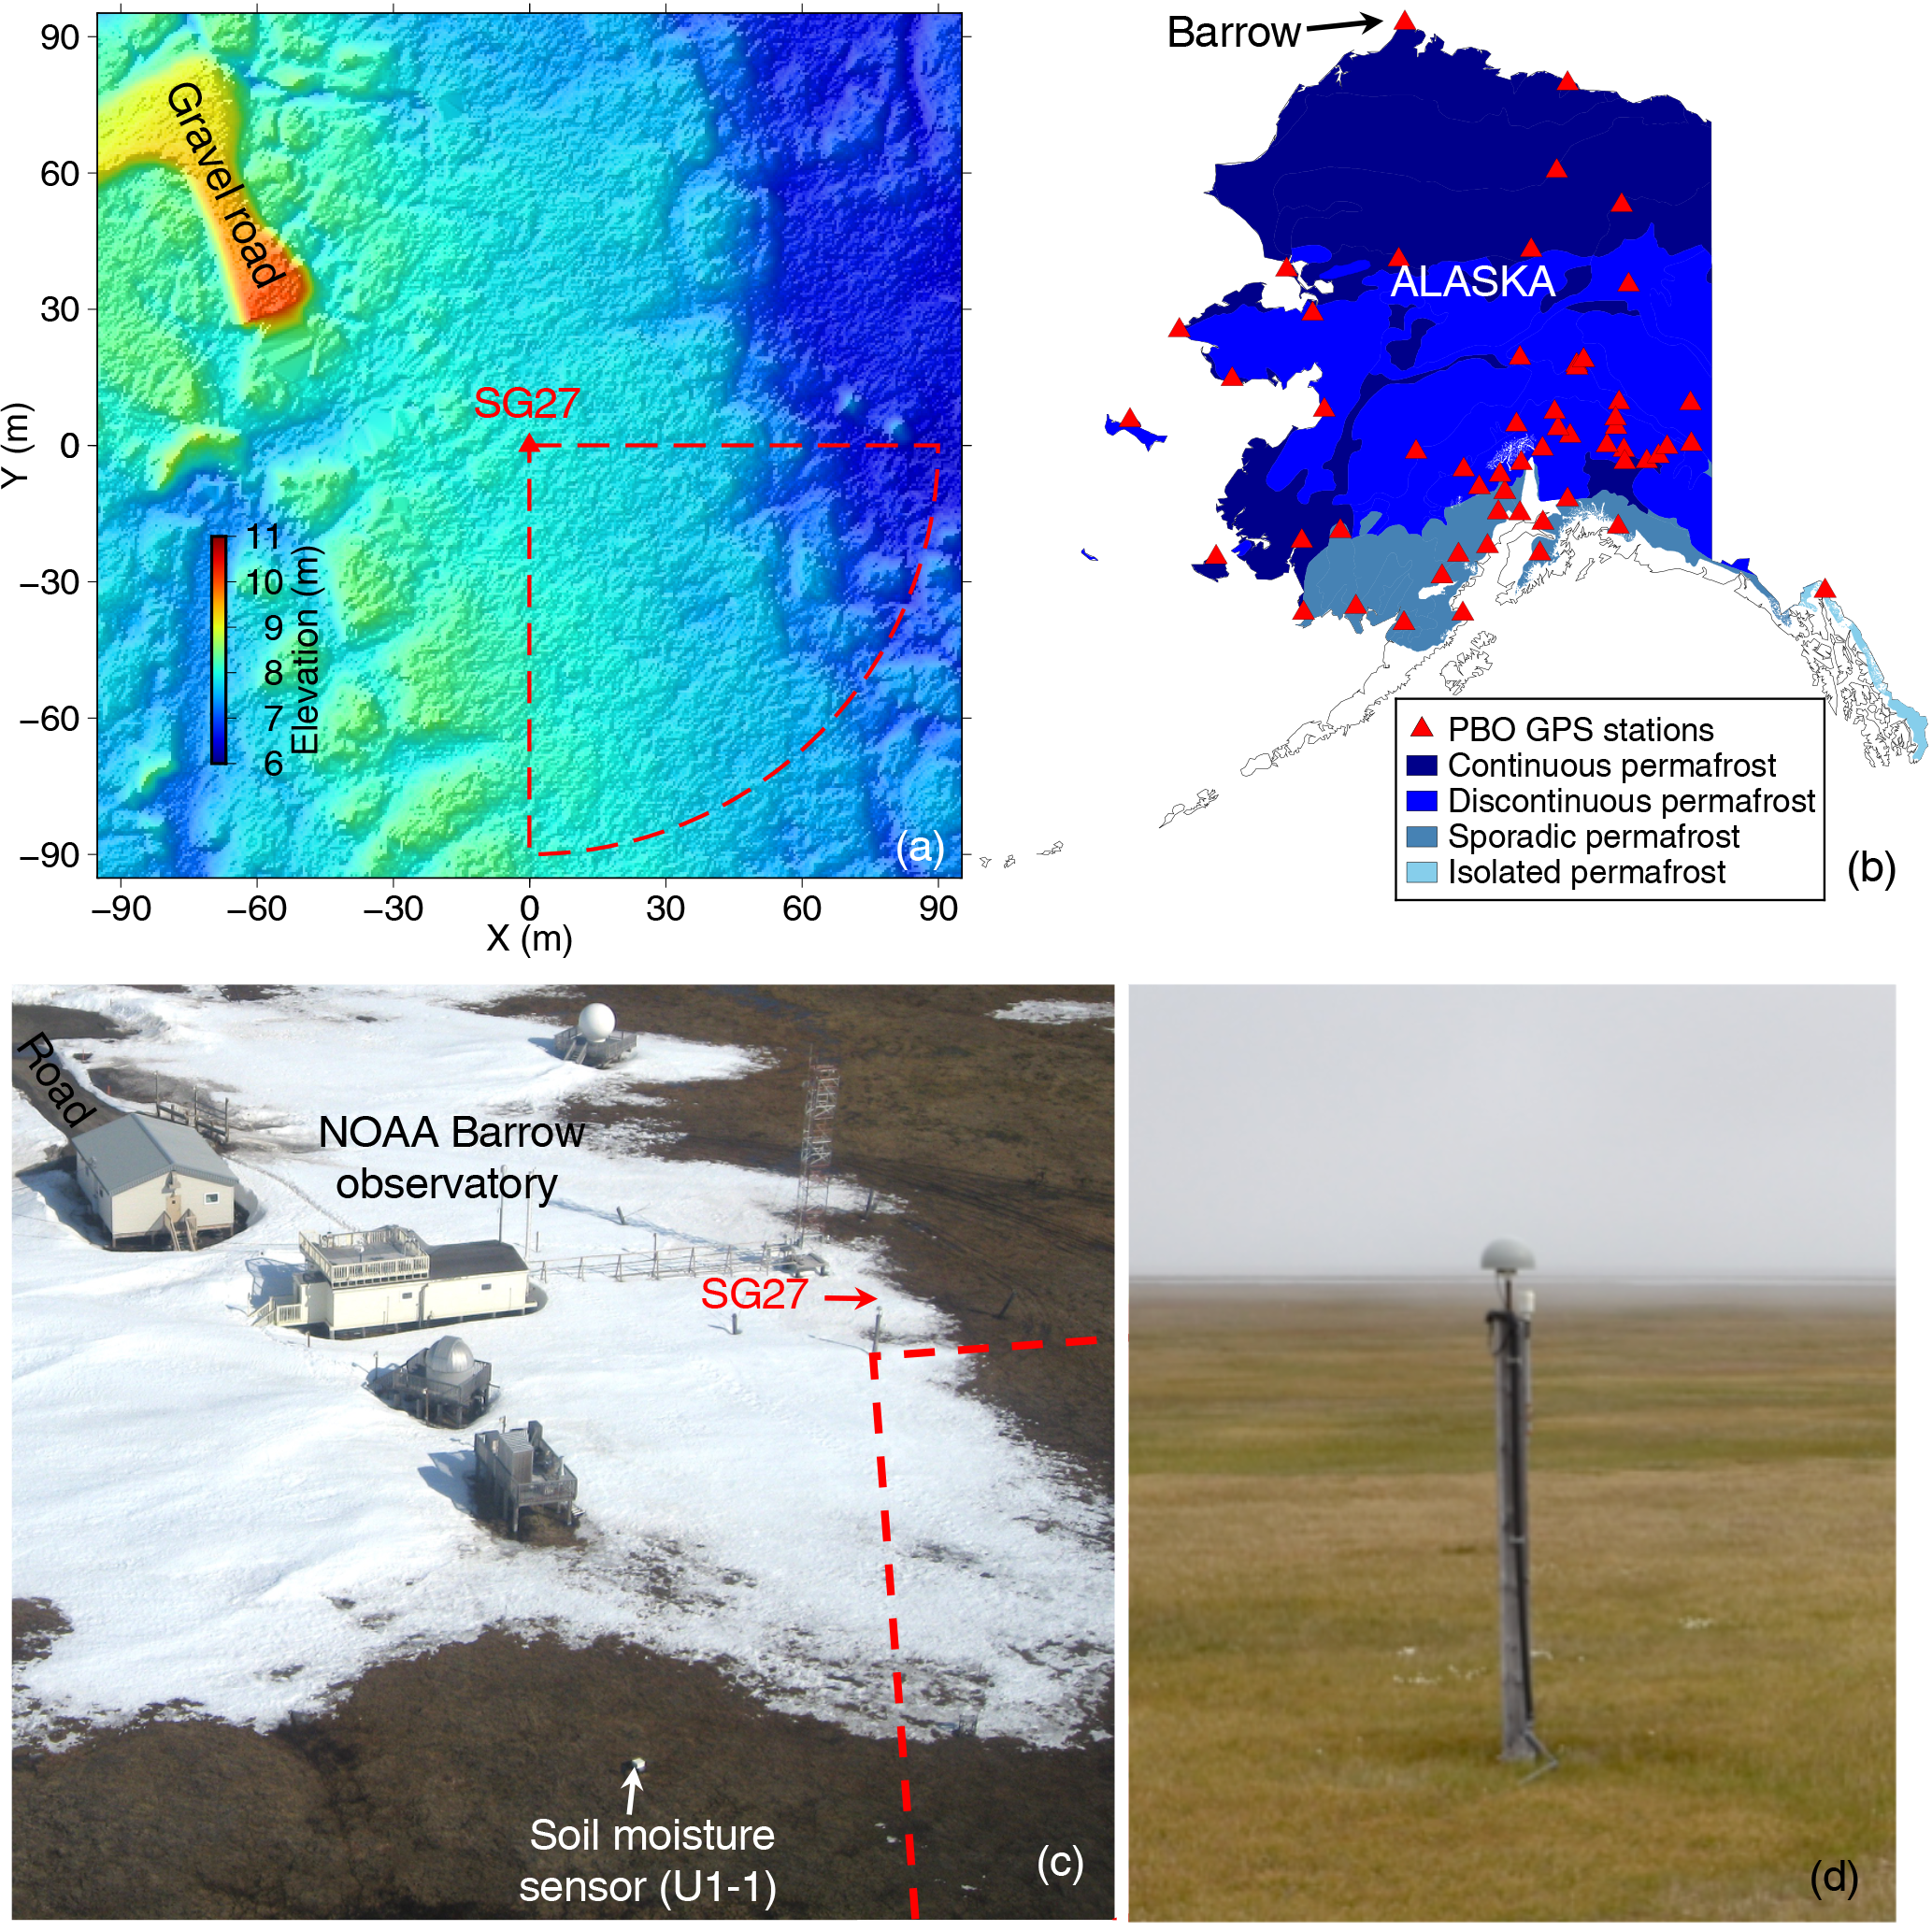 TC - Decadal changes of surface elevation over permafrost